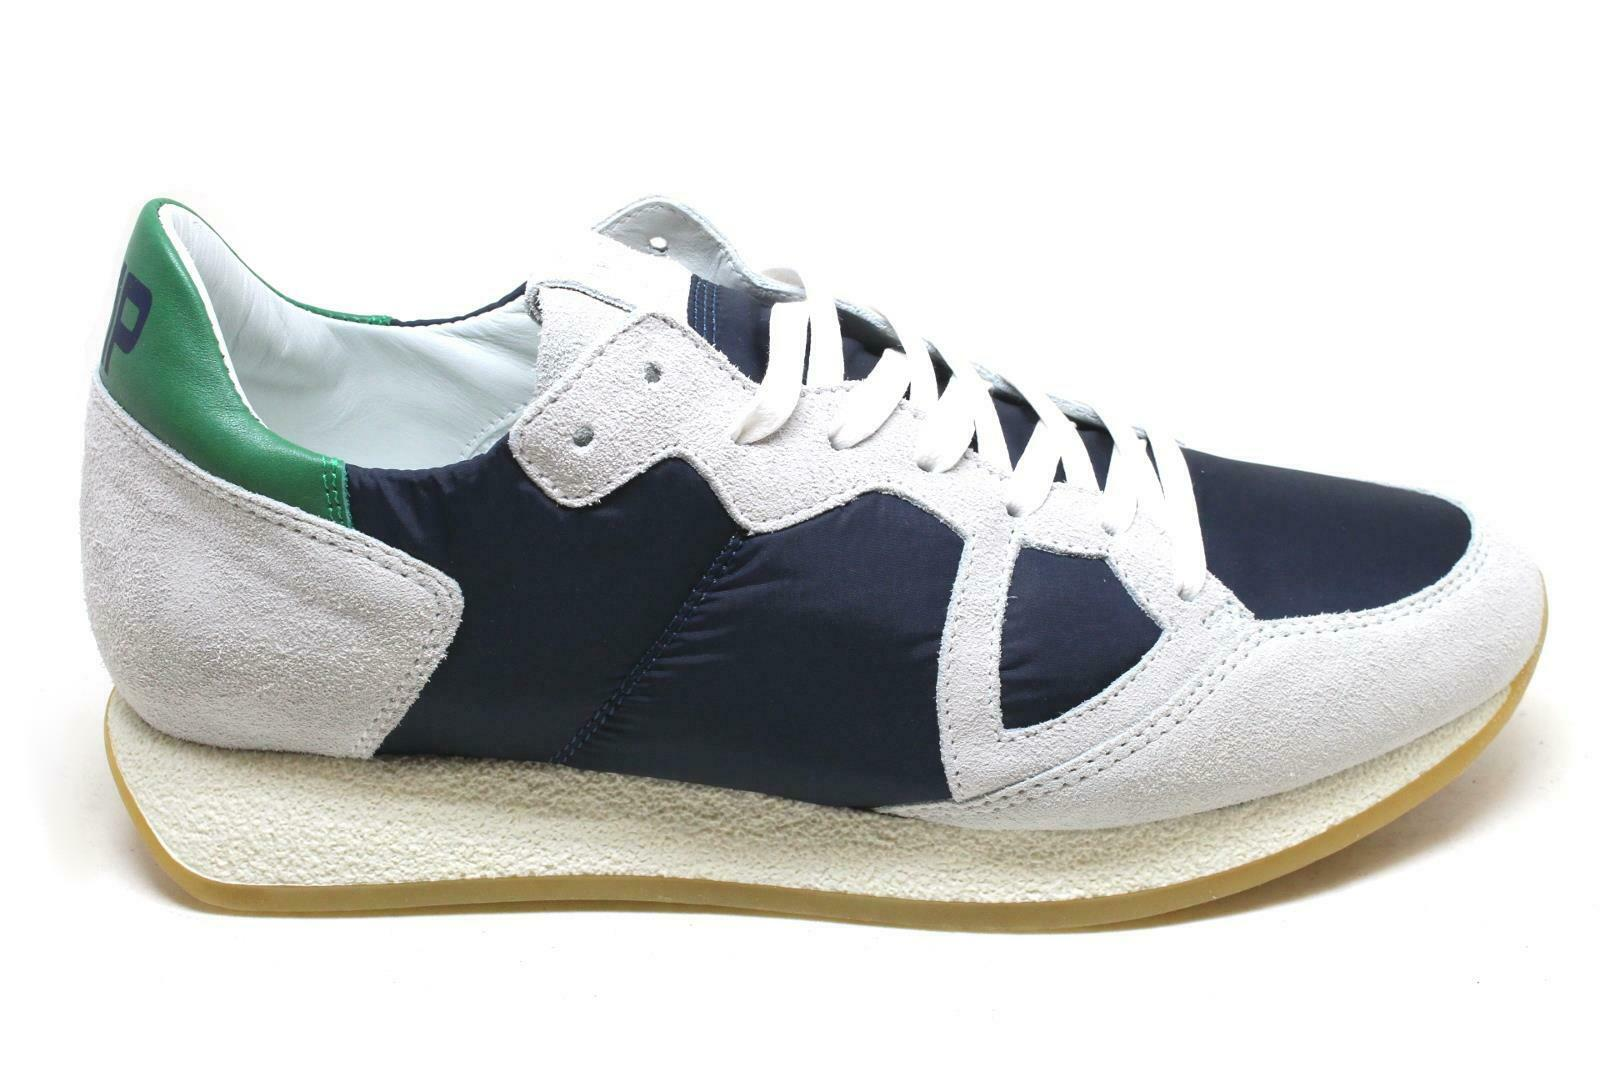 PHILIPPE MODEL - CHAUSSURE MEN'S CAM ICE + CANVAS blueE MVLU BX04 SS19